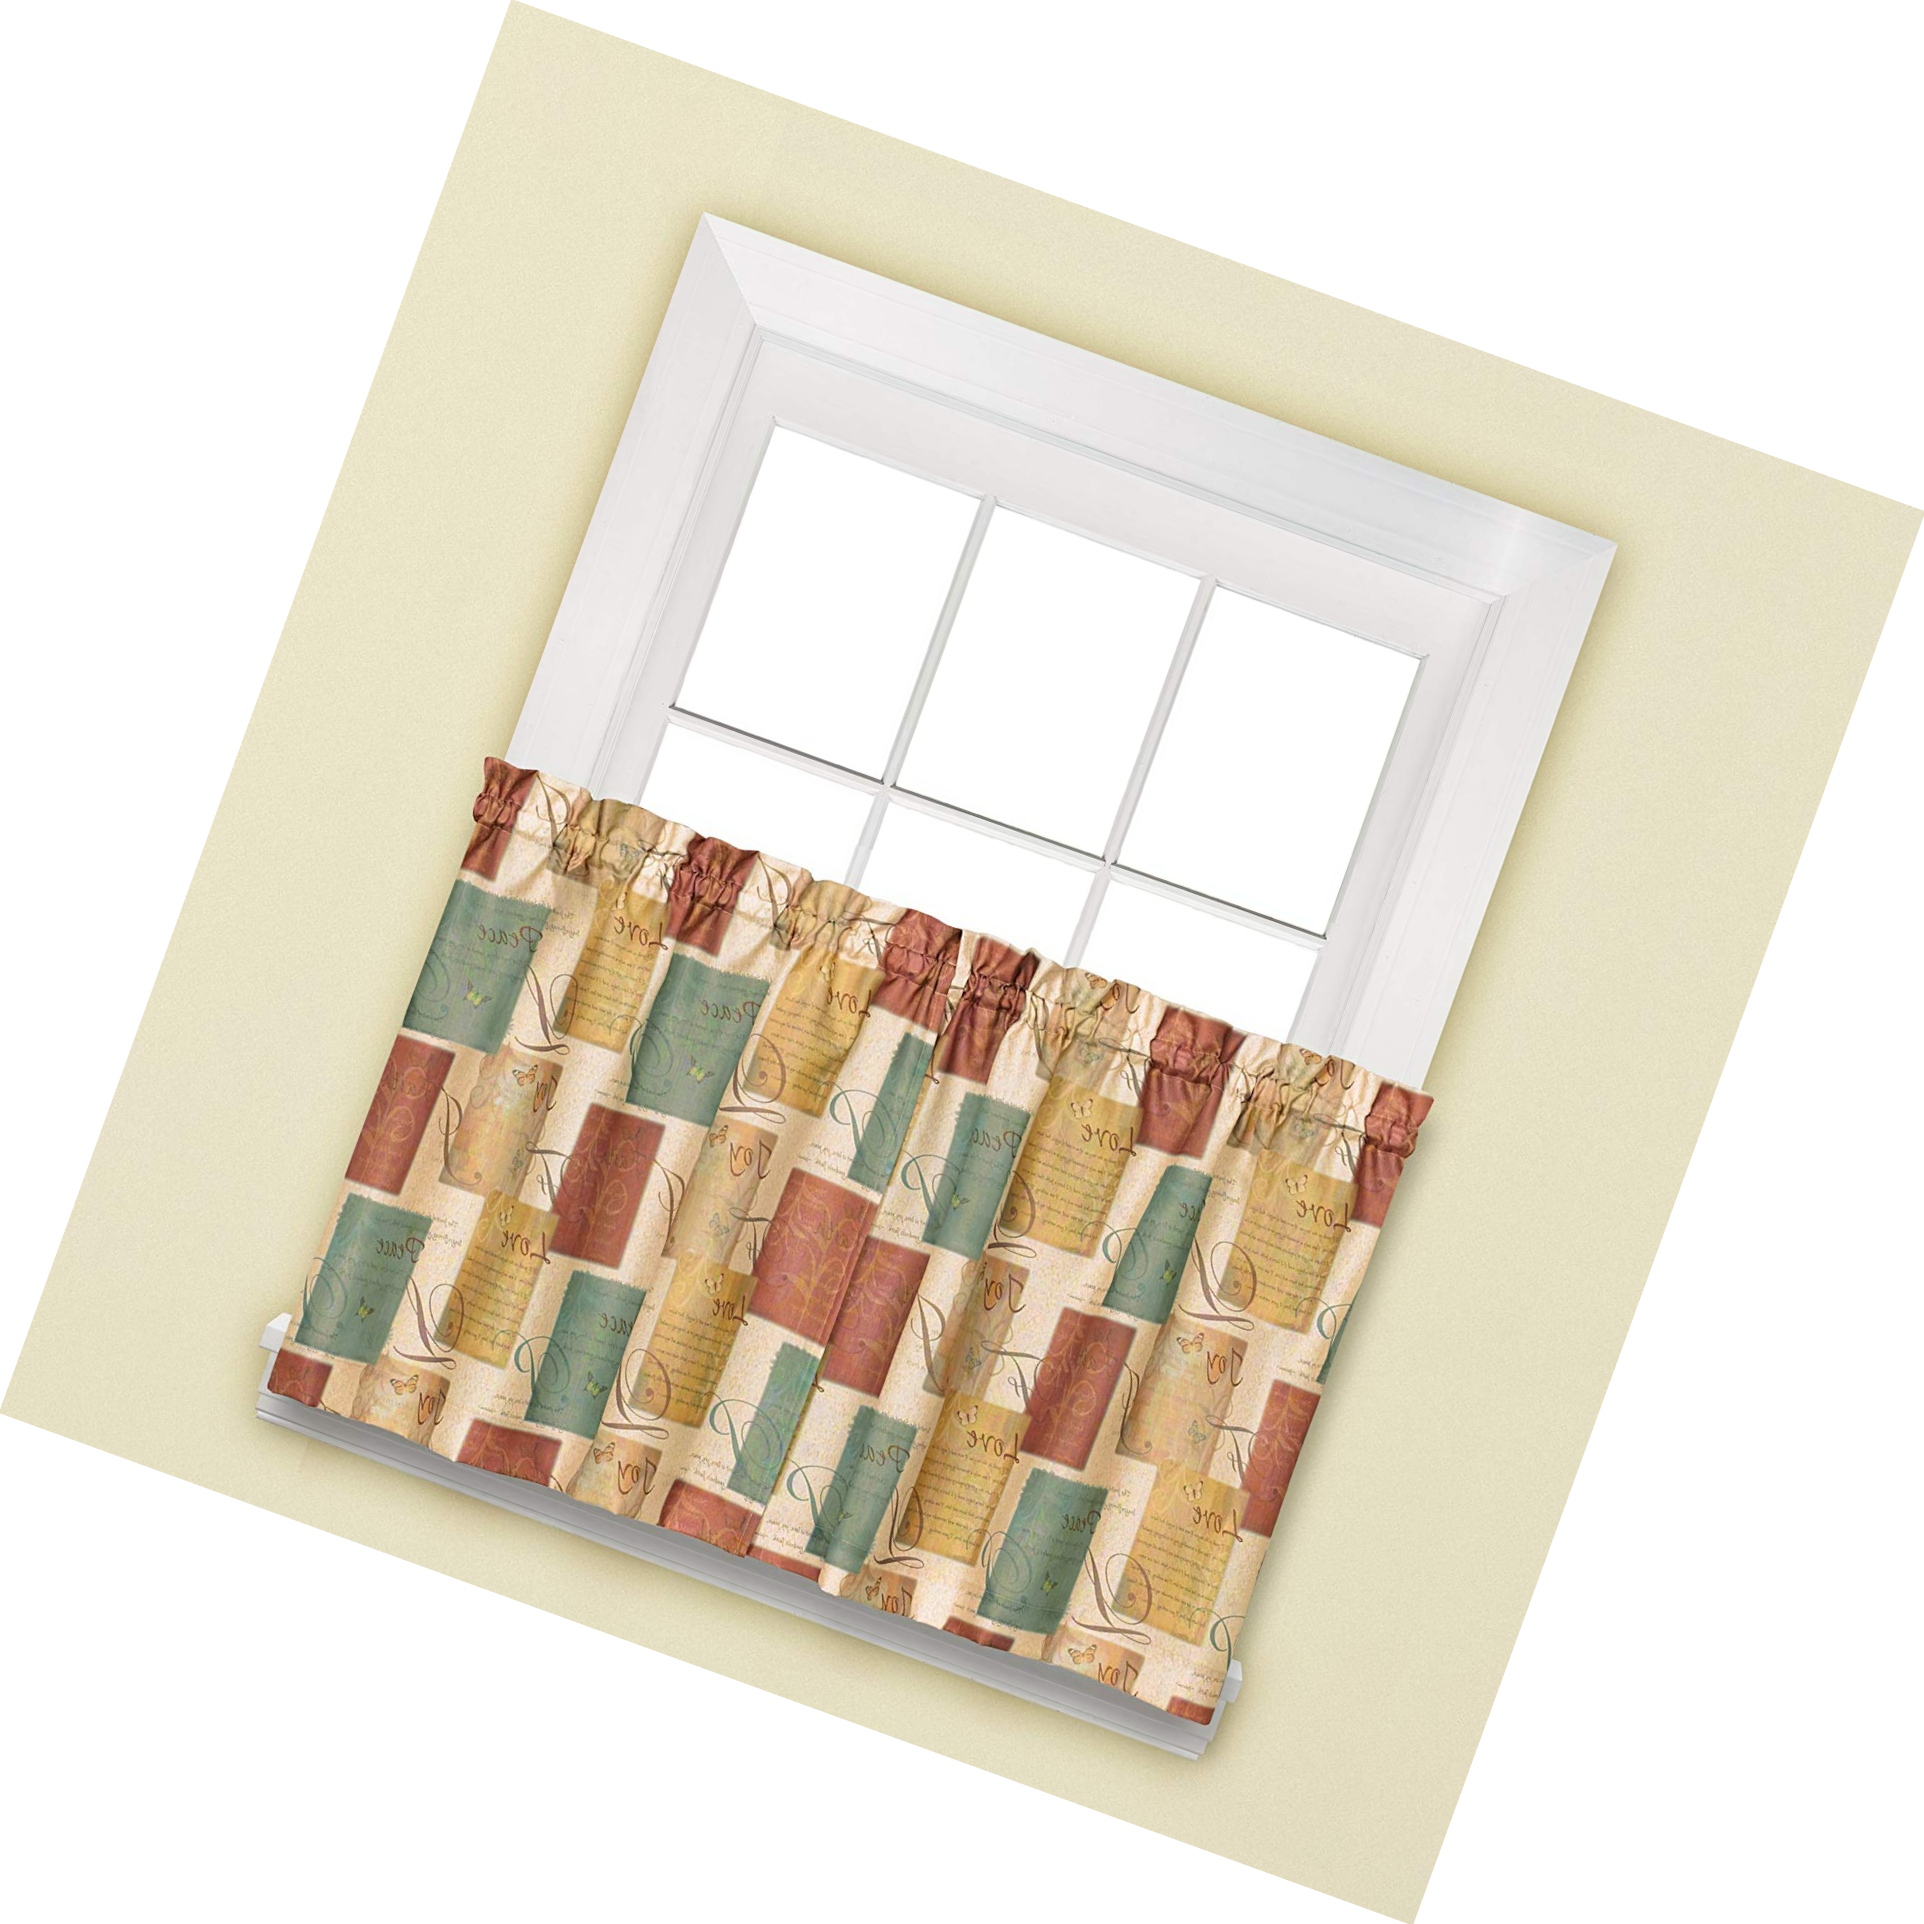 2020 Details About Skl Home Tranquility Tier Curtain Pair, Spice, 58 Inches X 24  Inches With Regard To Tranquility Curtain Tier Pairs (View 1 of 20)